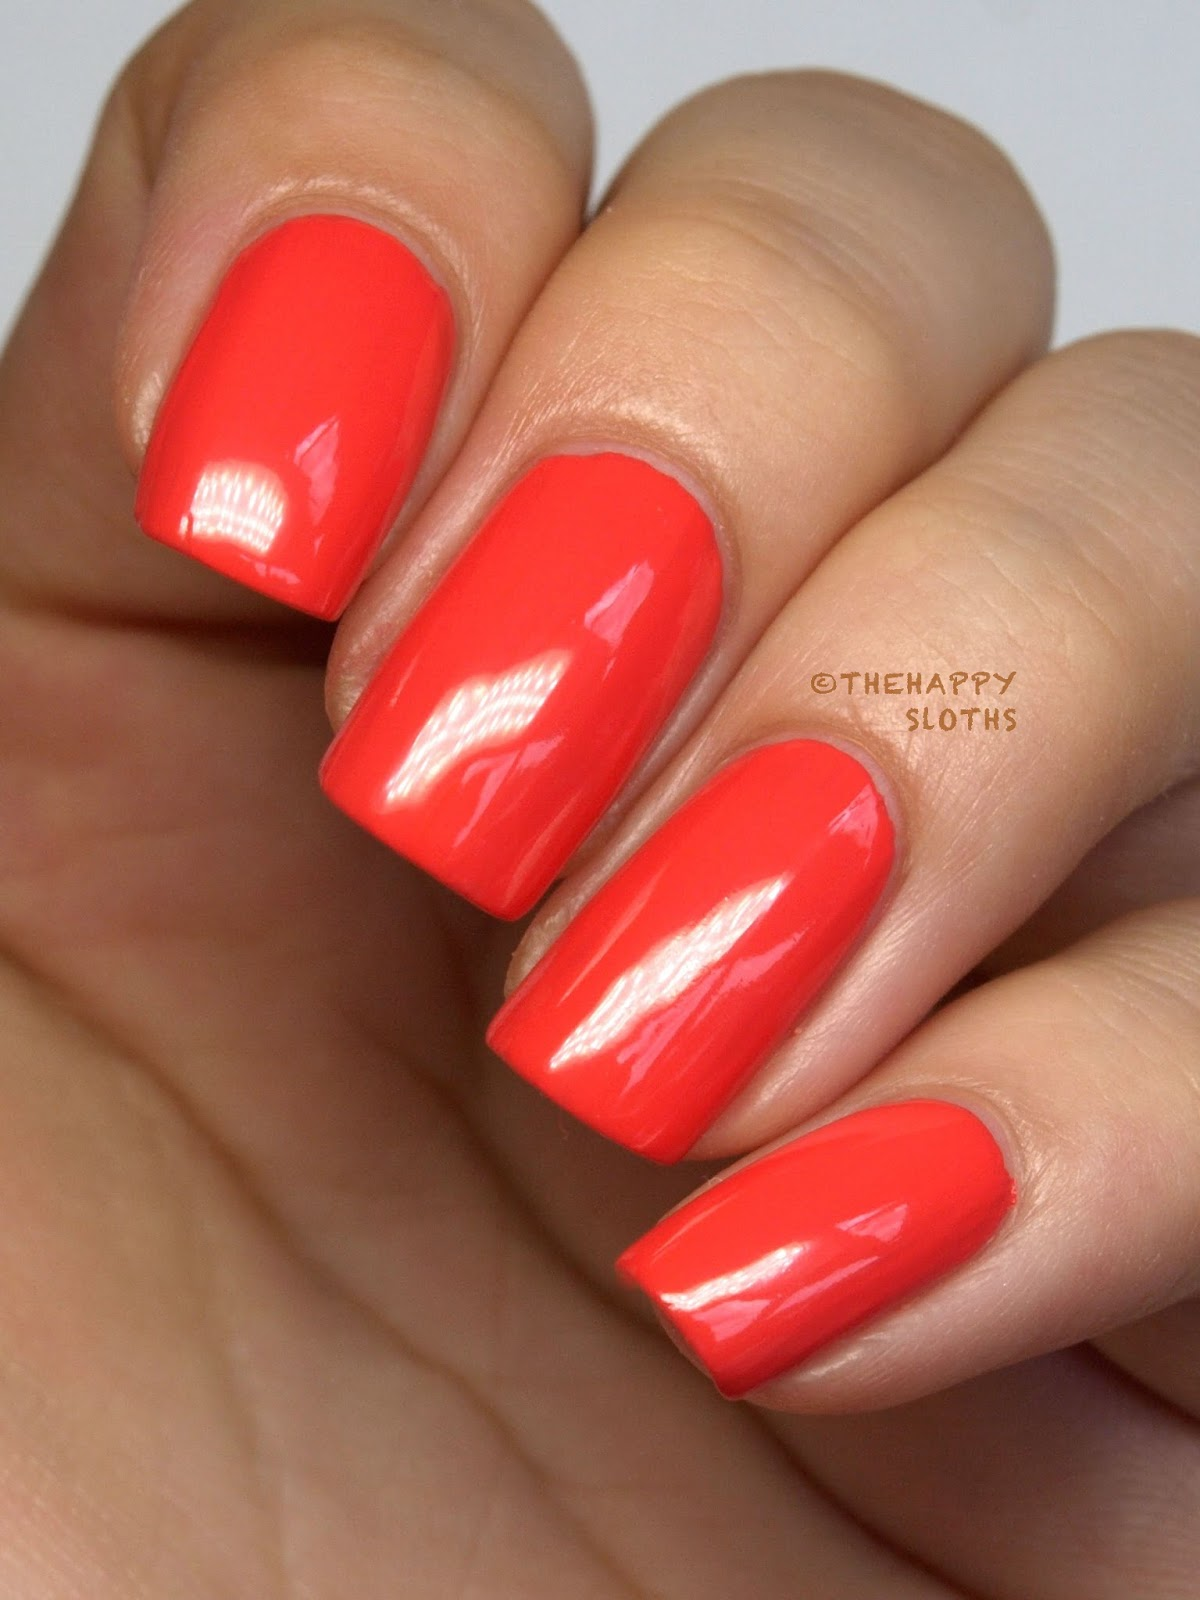 Nicole by OPI Seize the Day Summer 2014 Coral of the Story Review Swatch